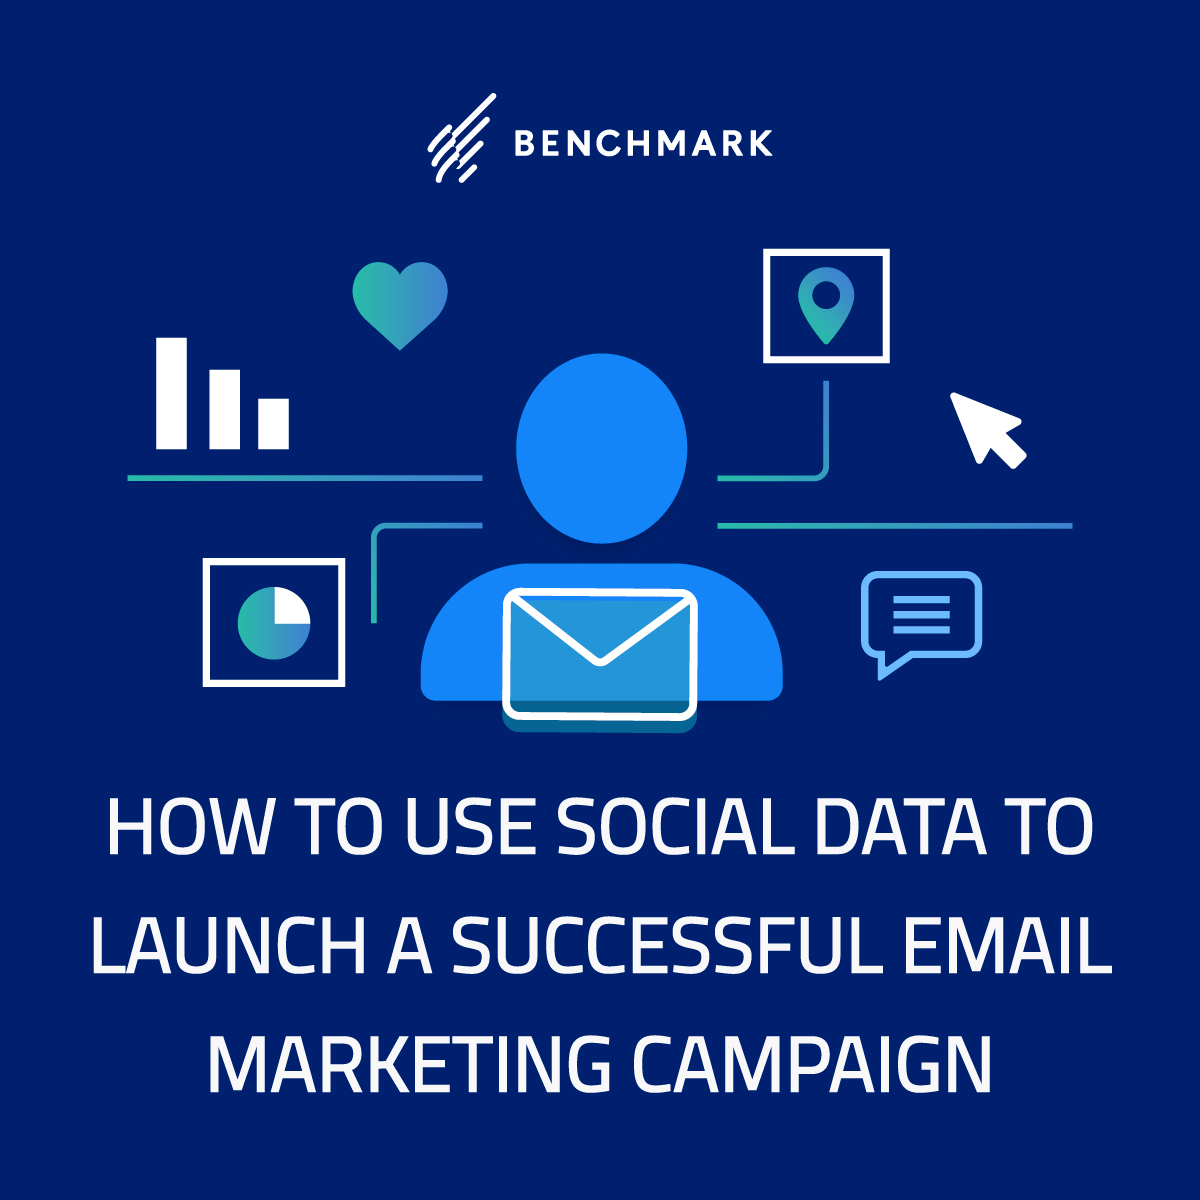 How to Use Social Data to Launch a Successful Email Marketing Campaign